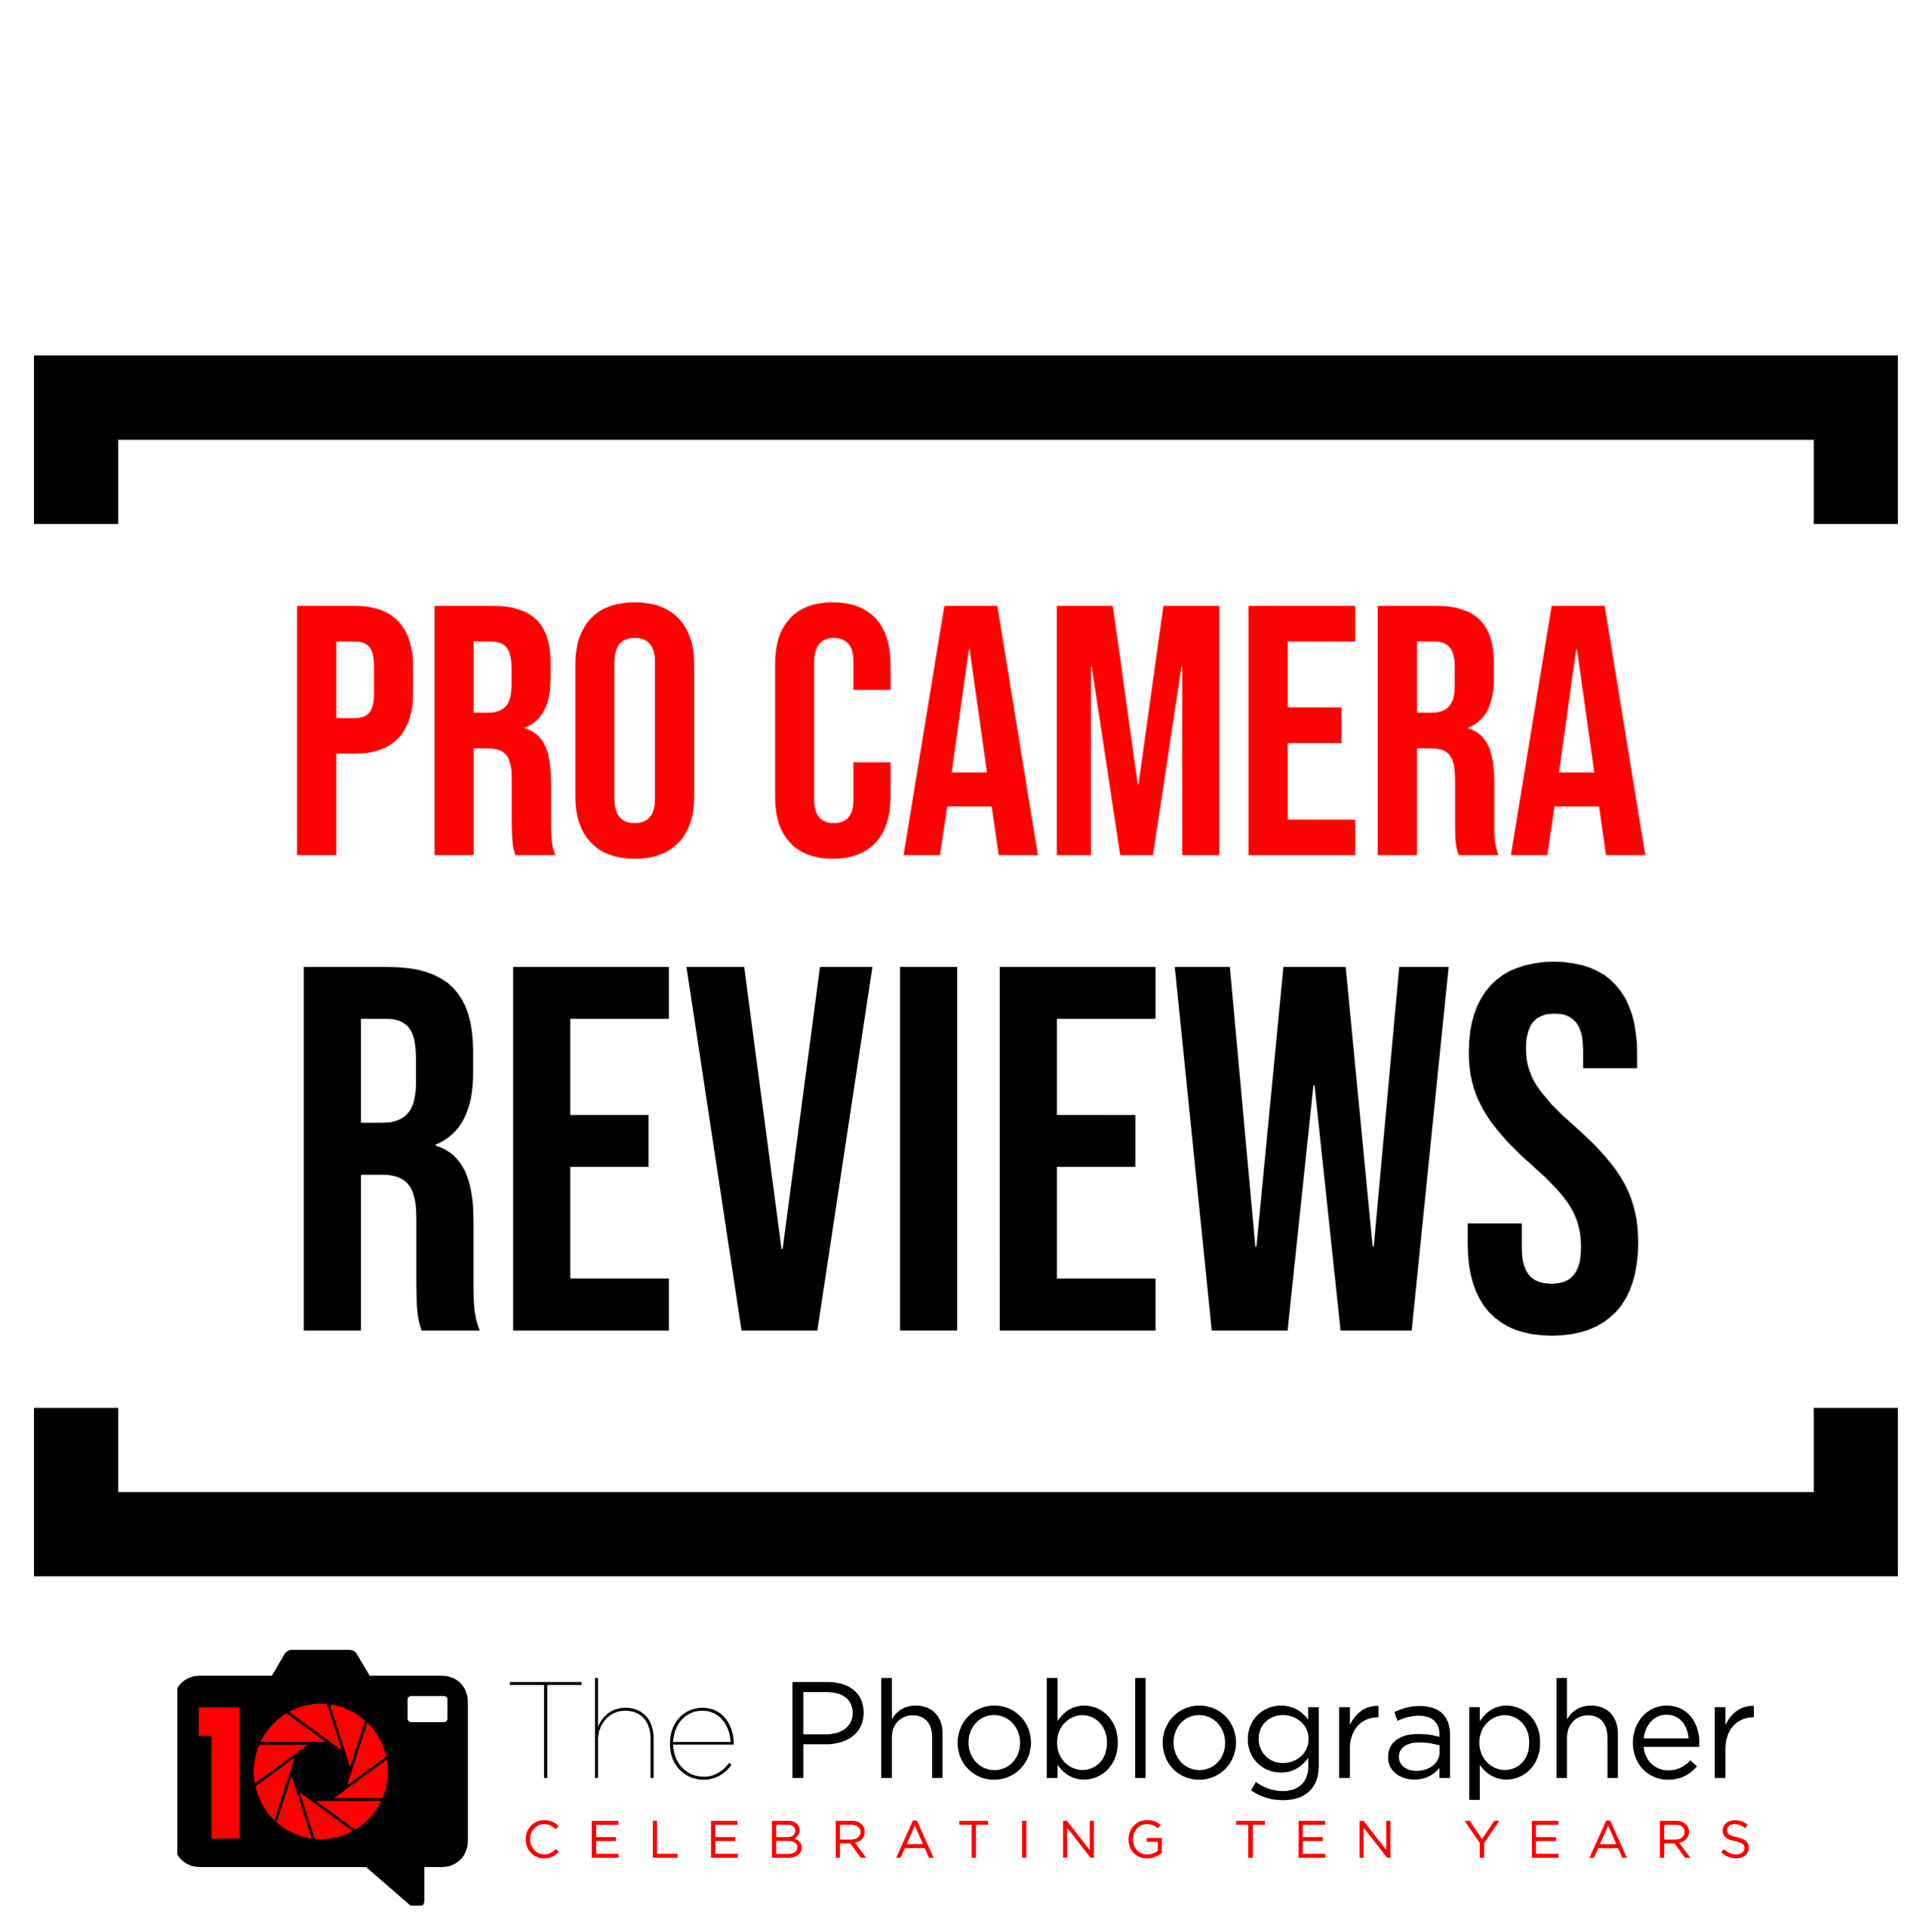 It's Back! The Pro Camera Reviews Show Returns For More